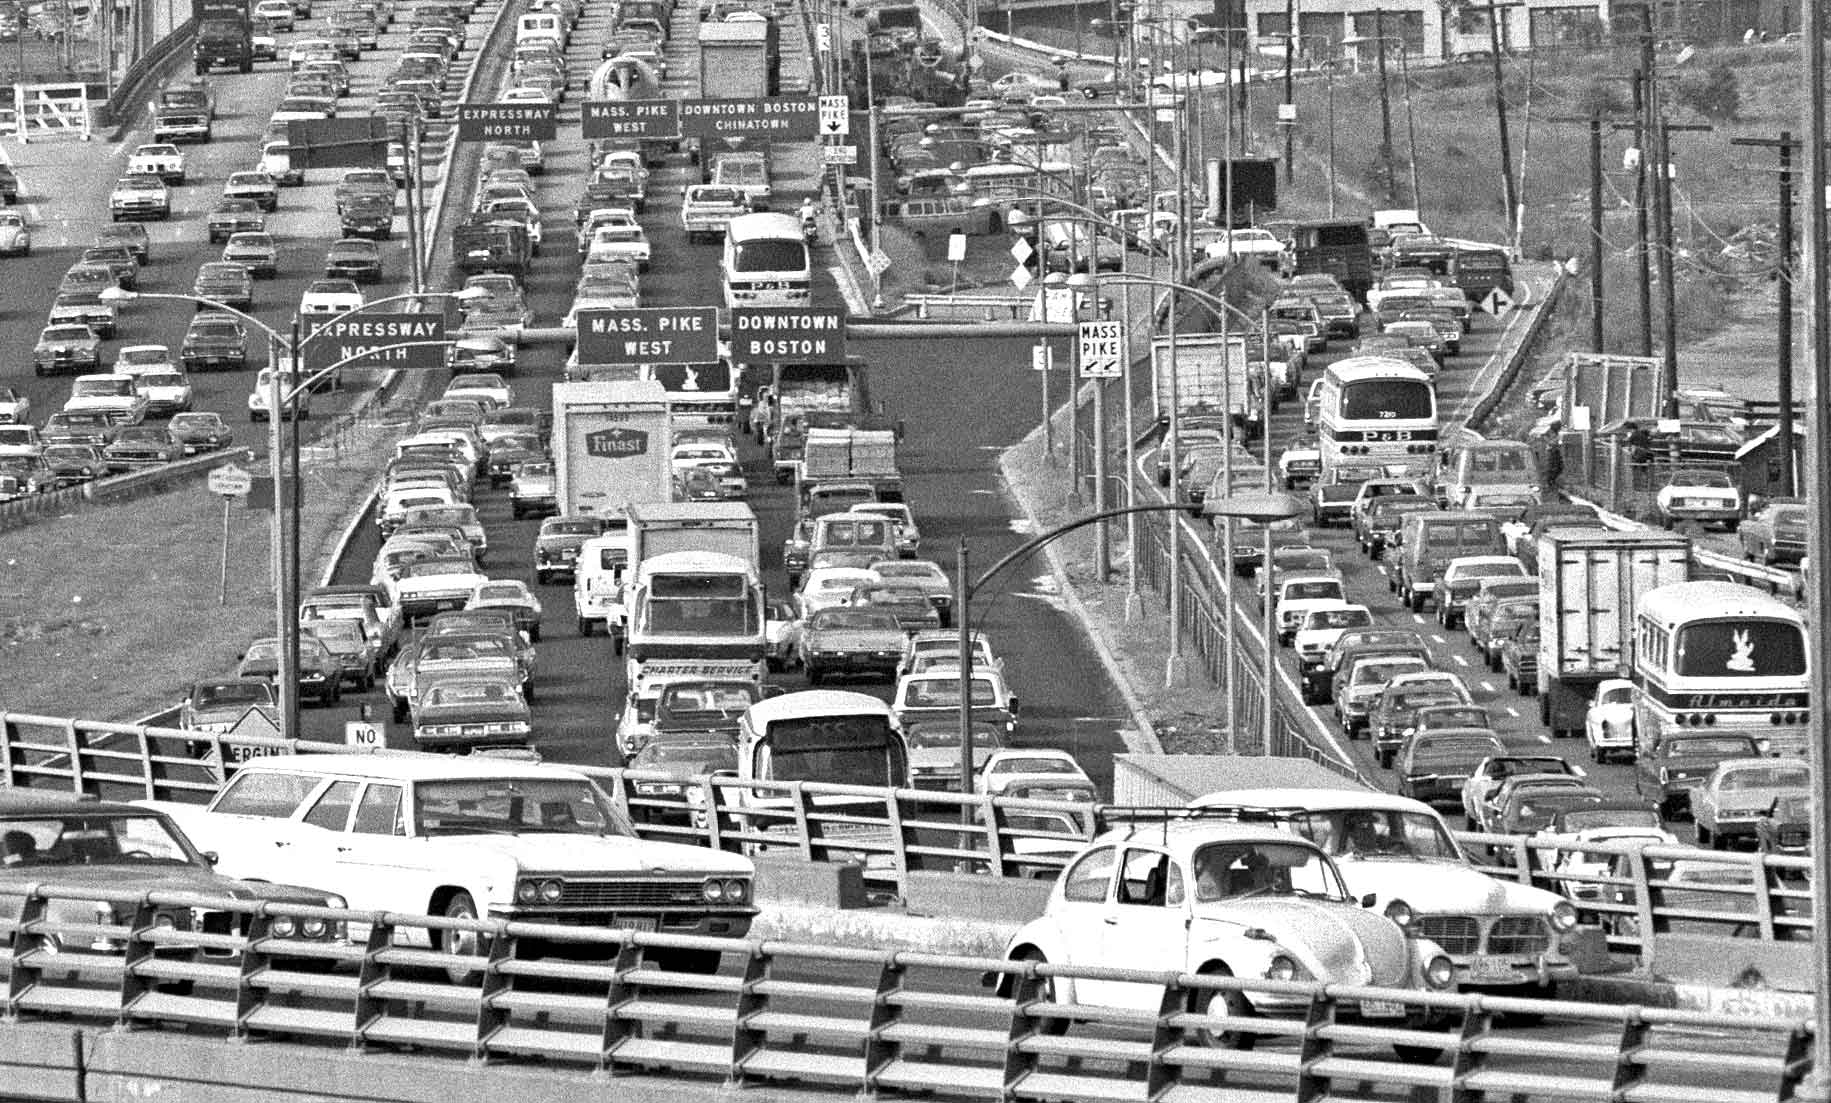 South Boston: Traffic Jam on the Southeast Expressway | The